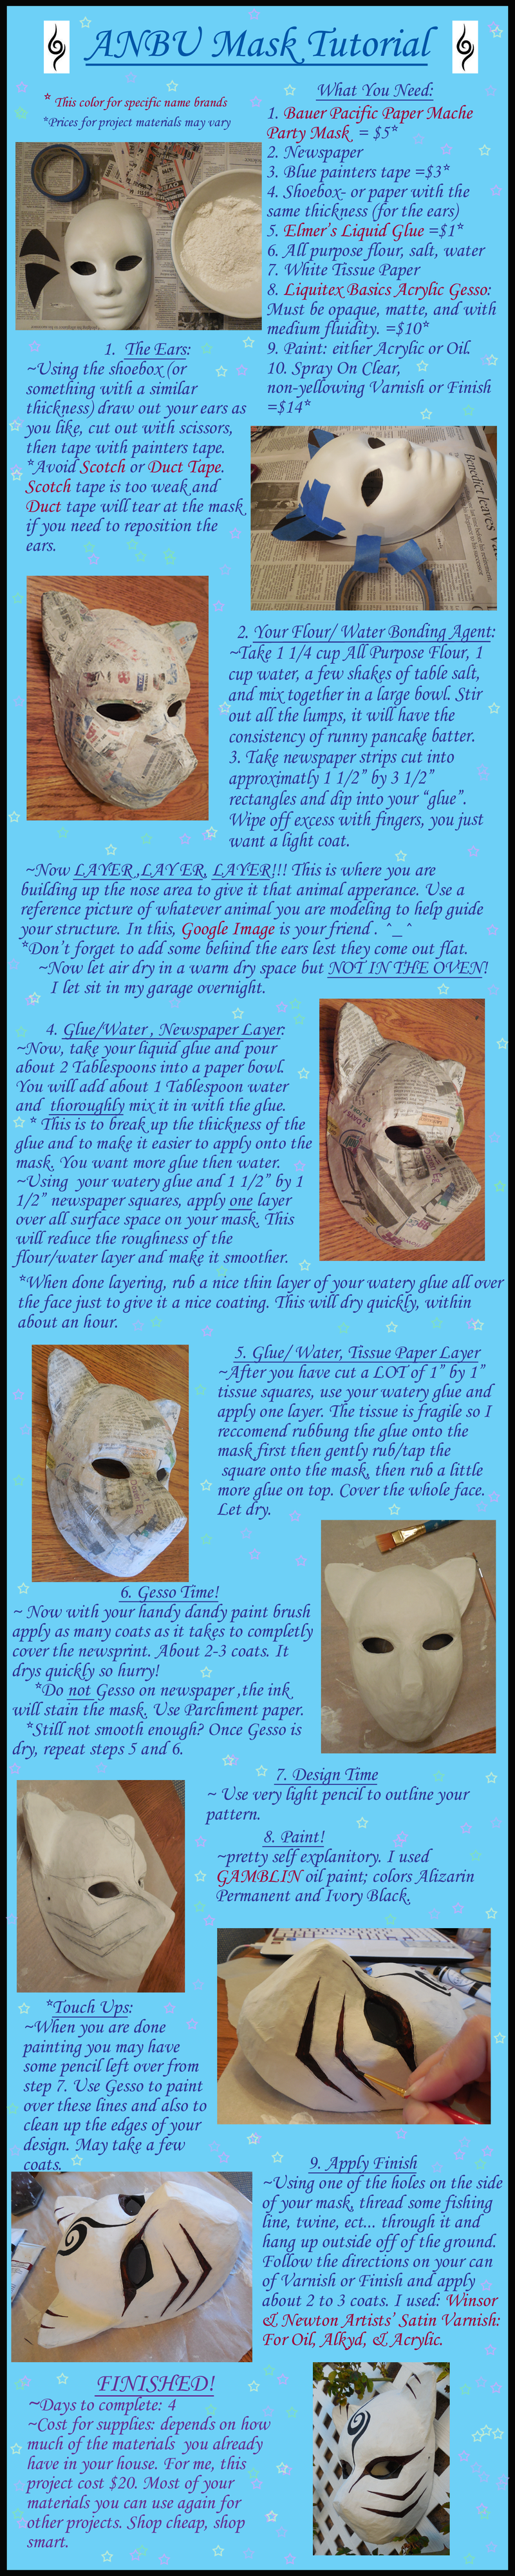 papermache anbu mask tutorial by agentshoemaker diy cosplay geekery pinterest masken. Black Bedroom Furniture Sets. Home Design Ideas